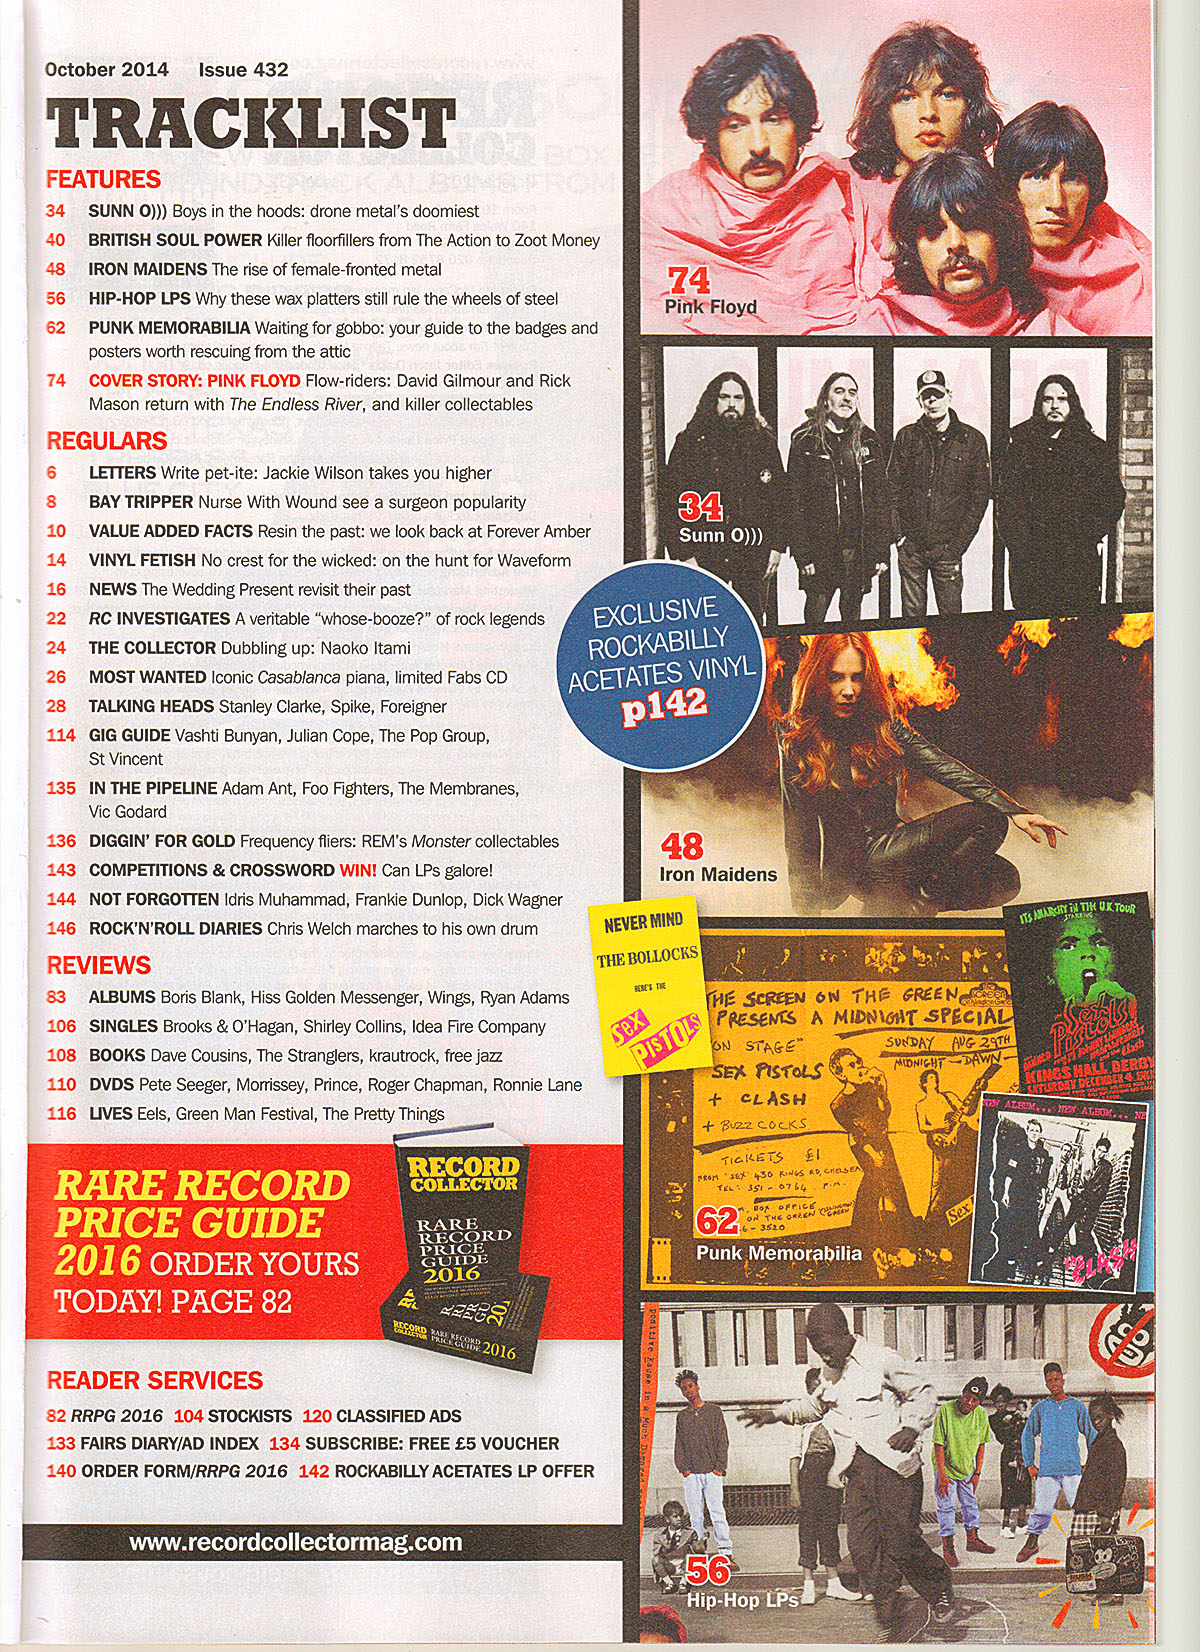 SUNN O))) Record Collector Feature October issue 2014